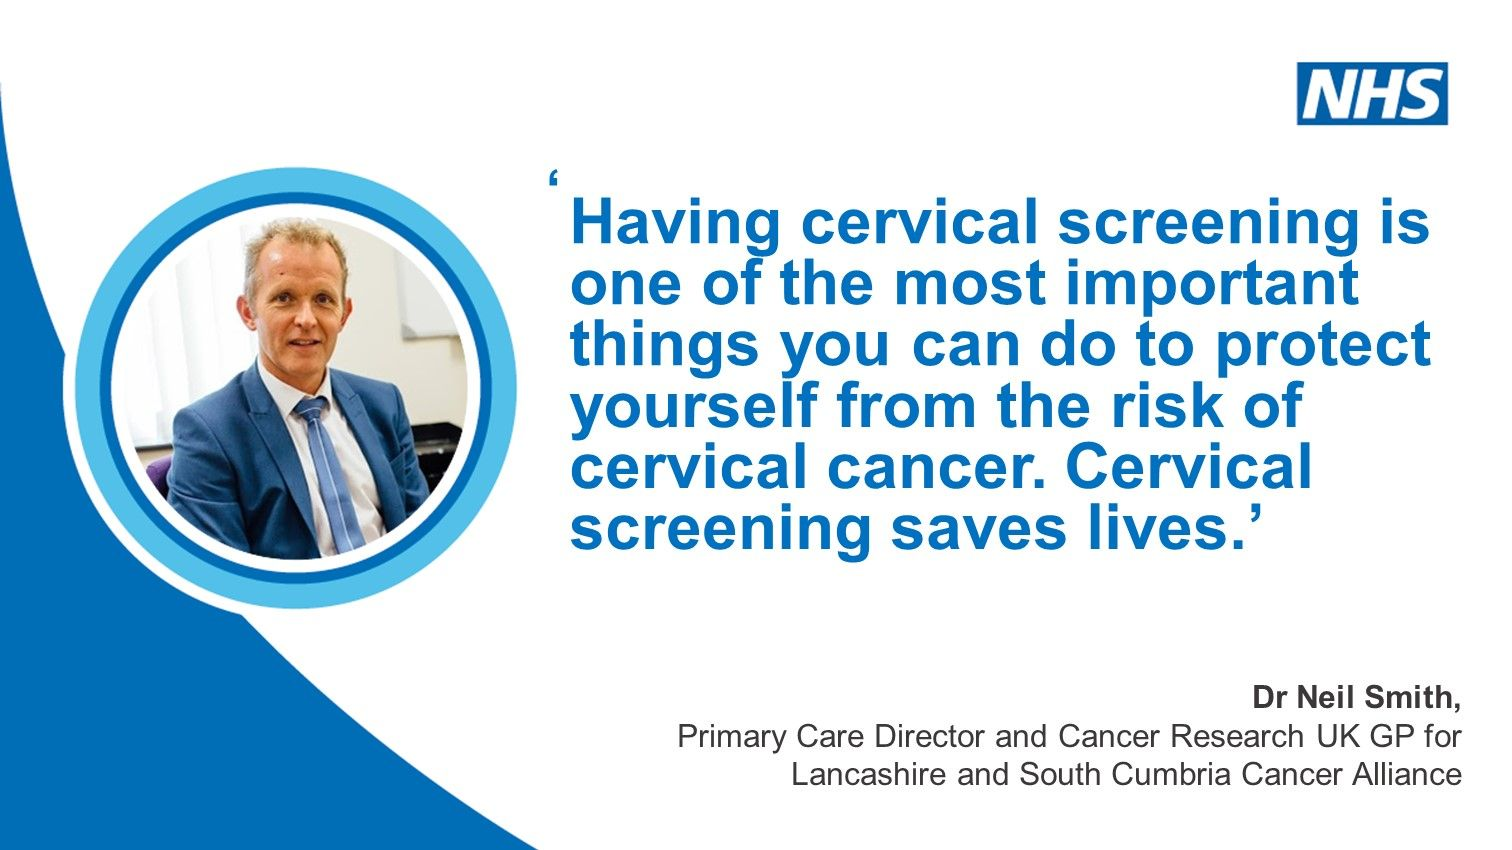 Having a cervical screening test is one of the most important things you can do - Dr Neil Smith